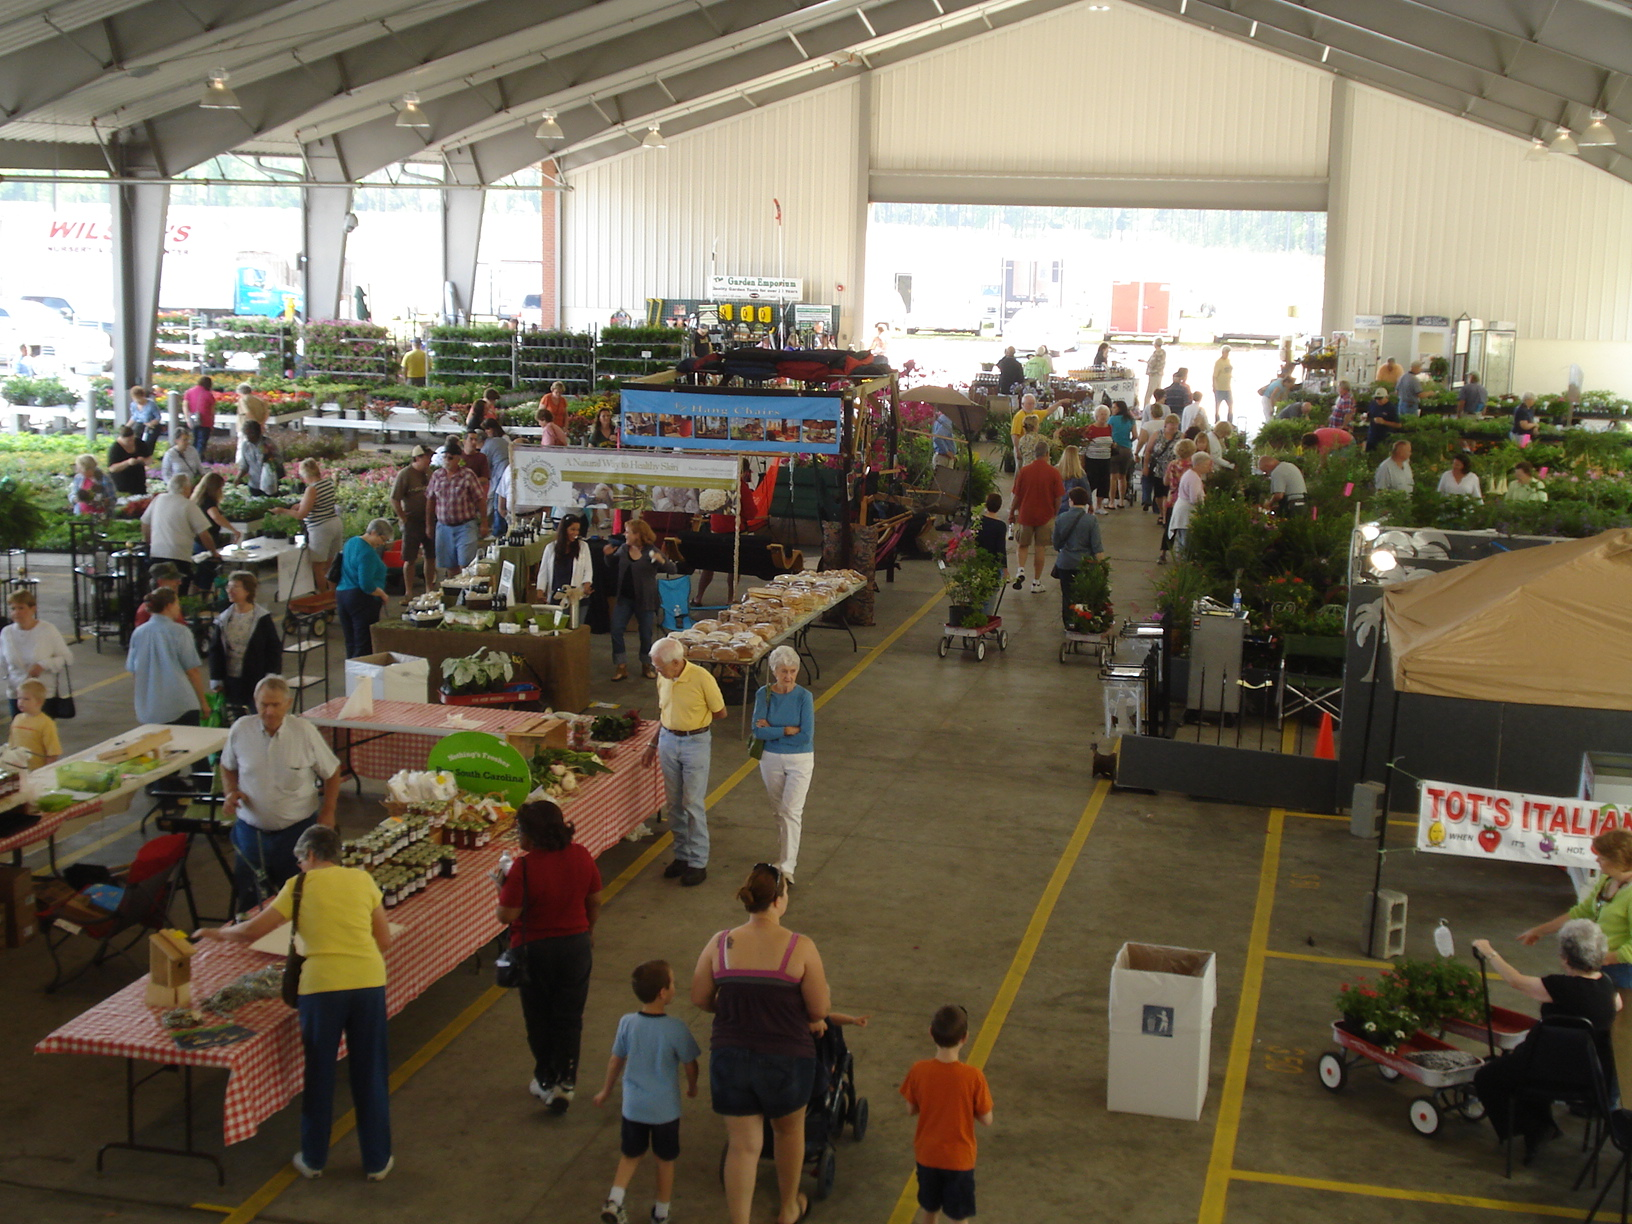 South carolina state farmers market south carolina for Indoor gardening market size